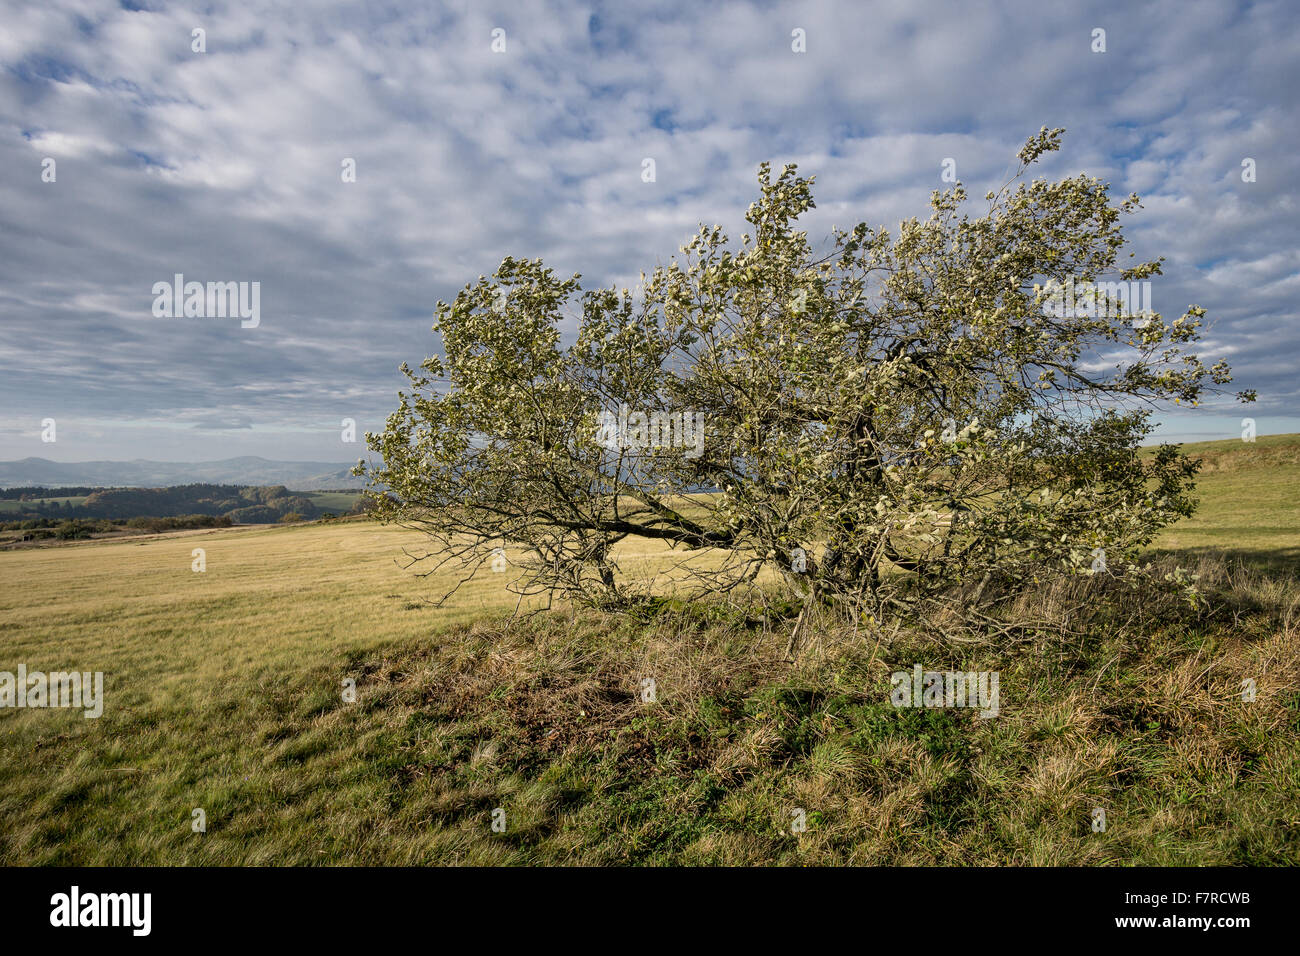 A tree on a hilly landscape with a dramatic sky - Stock Image